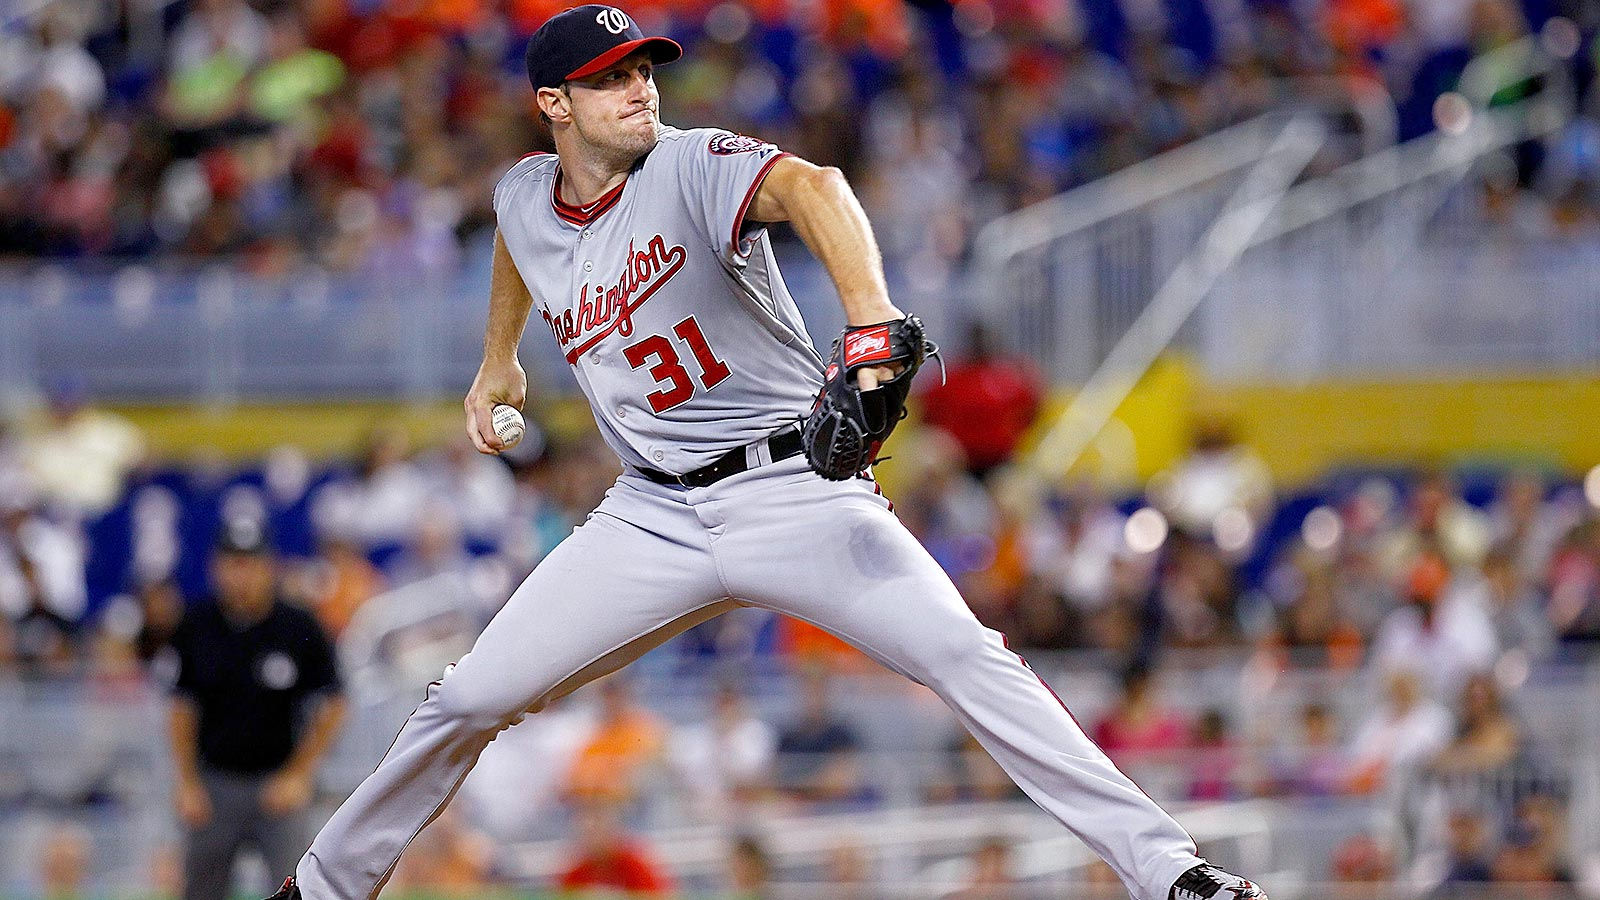 Scherzer earns win, Papelbon gets save as Nats beat Marlins